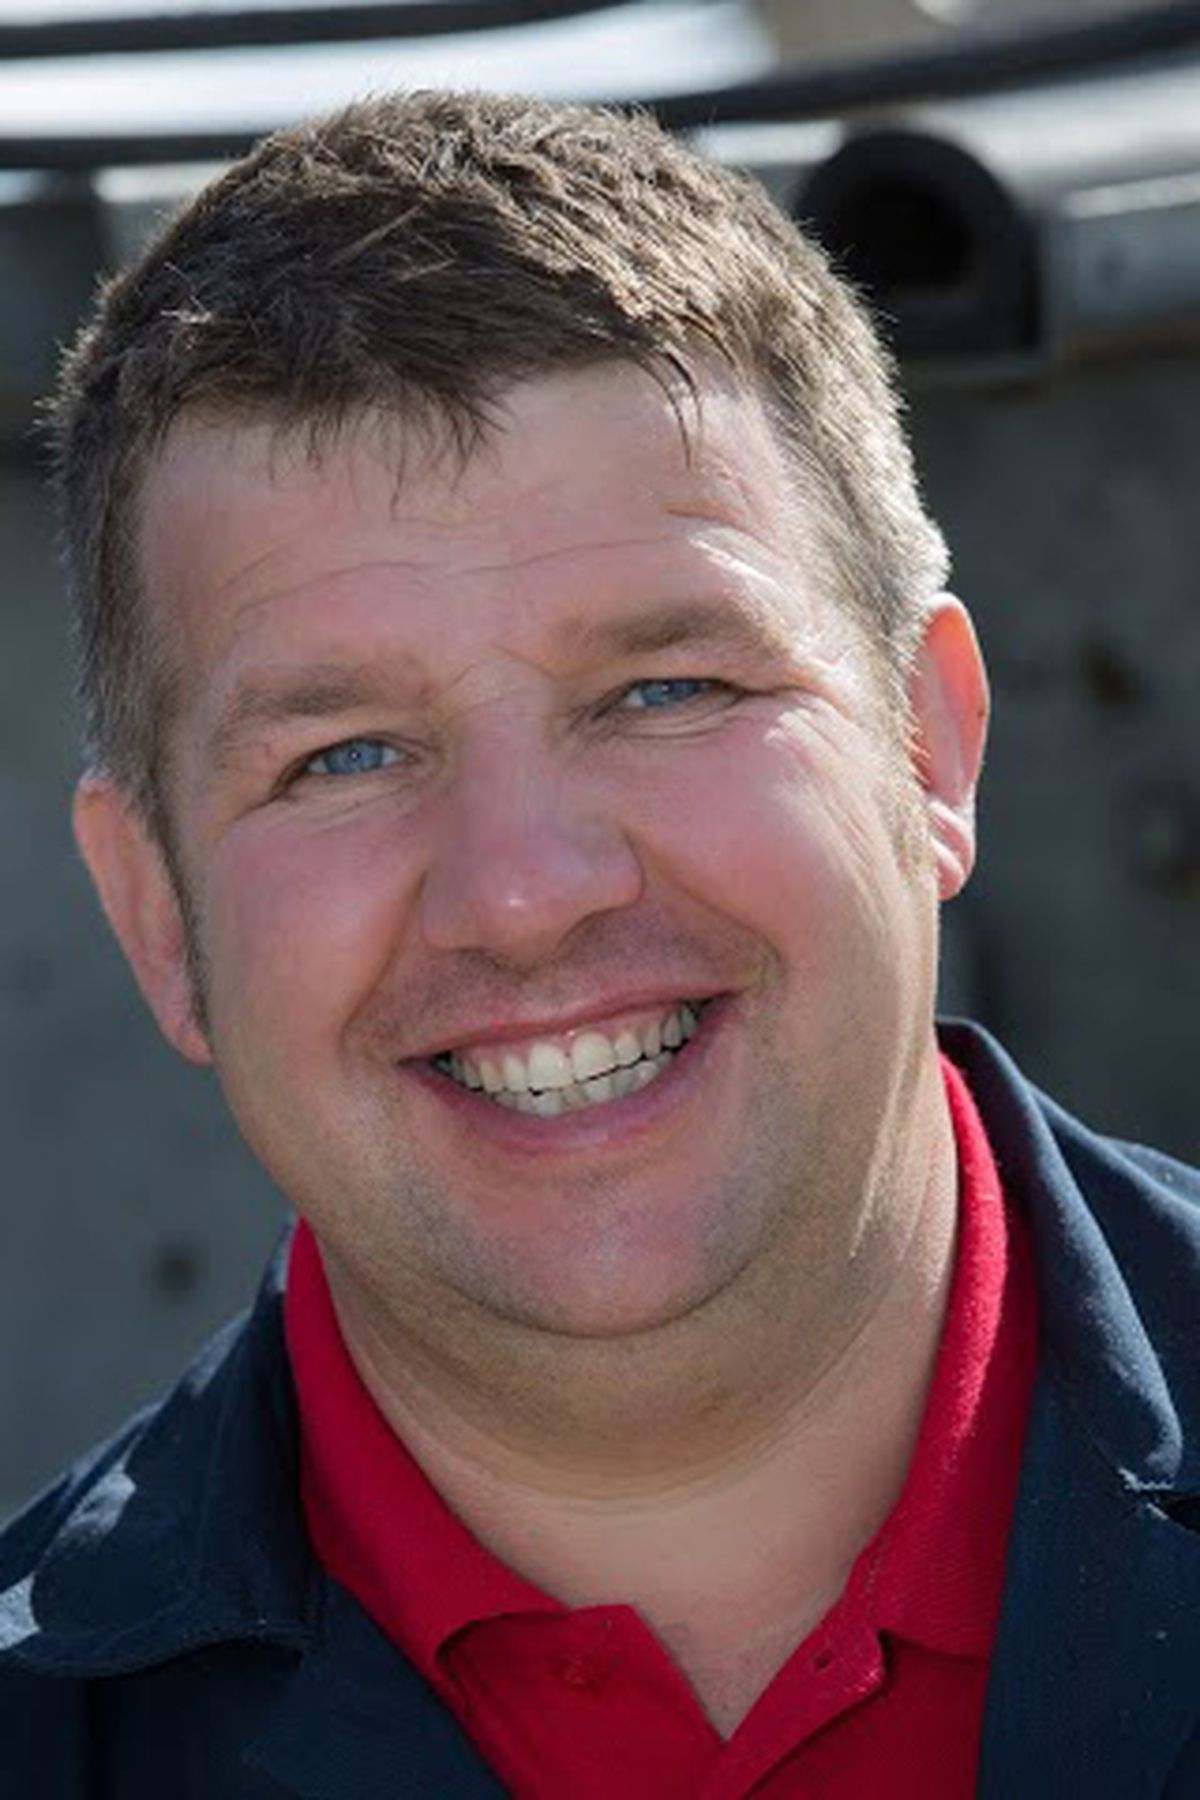 Nick Challenor is the owner of ND Challenor Professional Livestock Services.